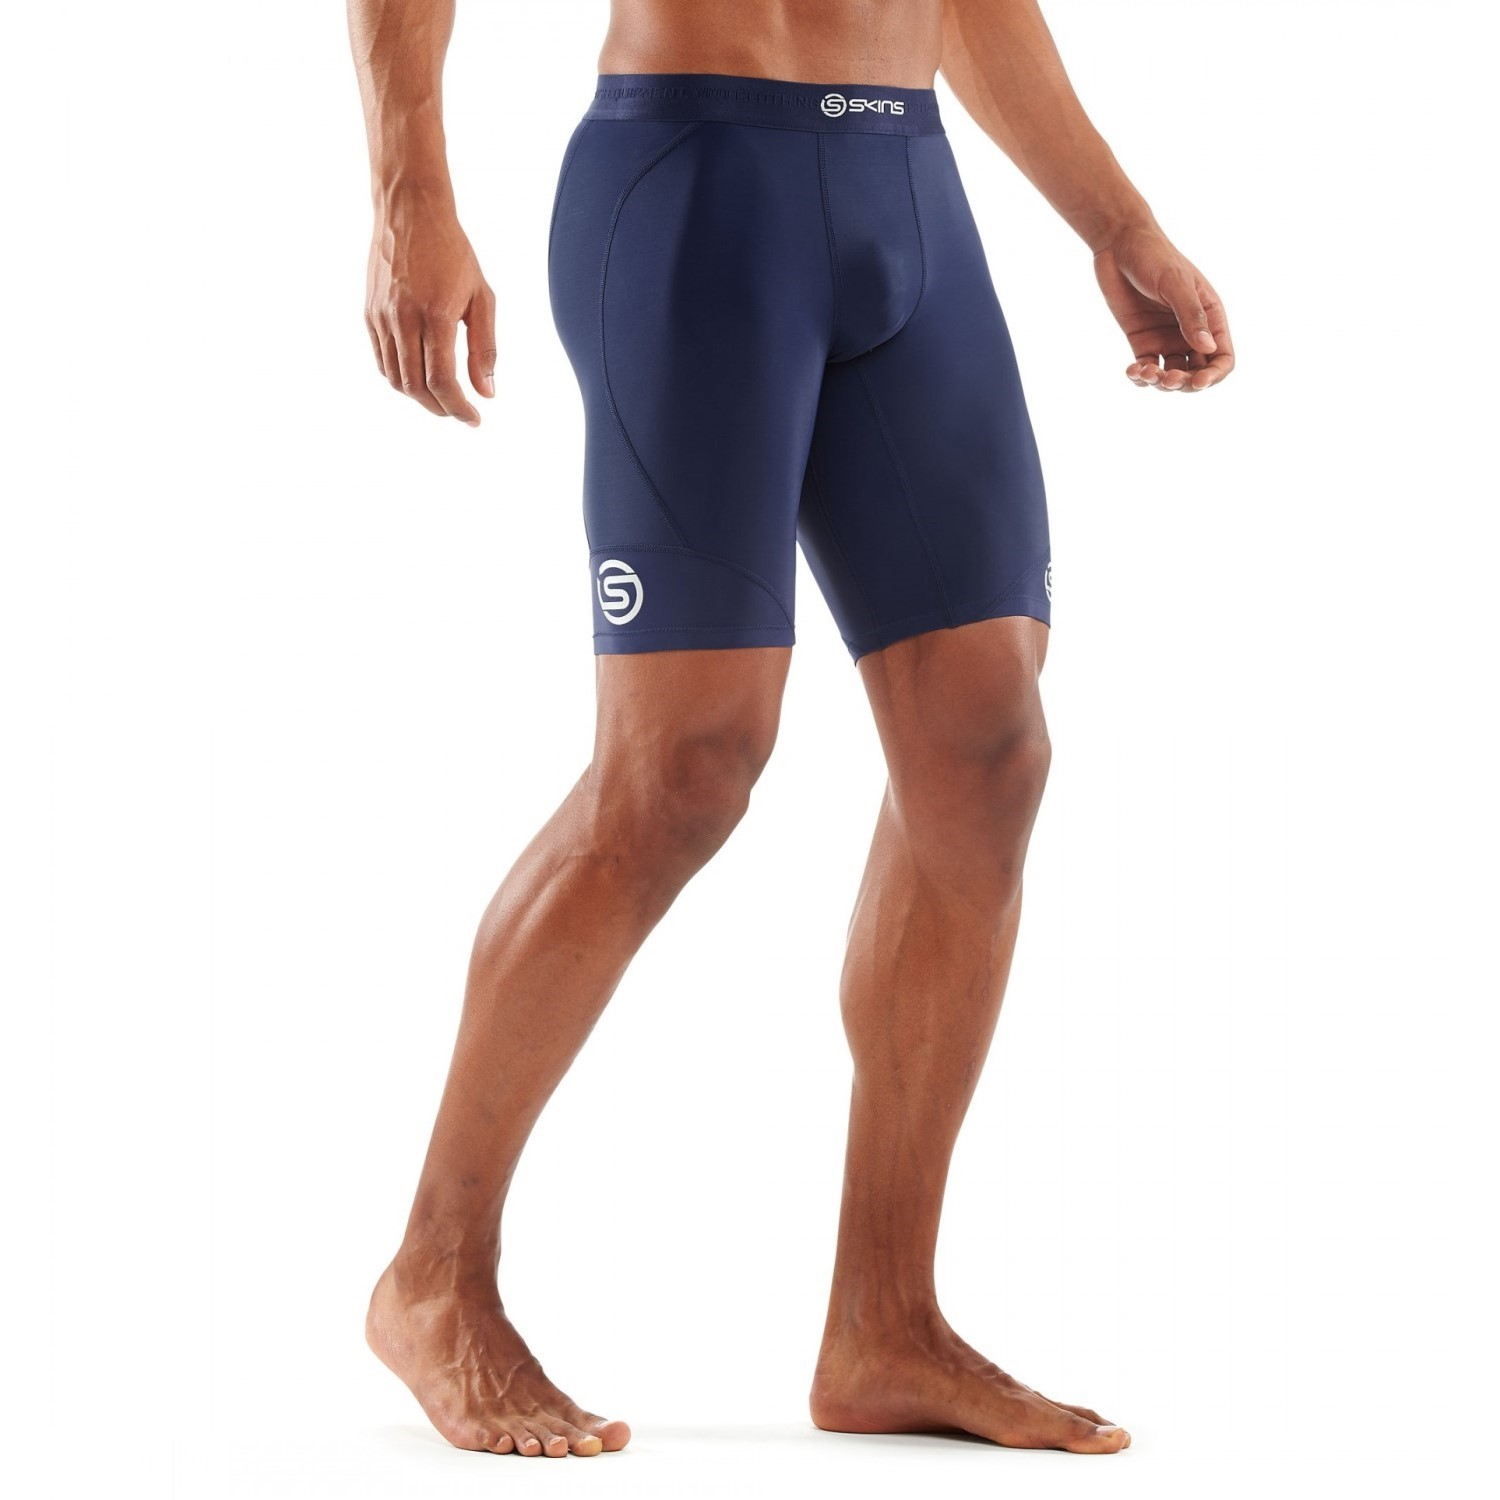 4a82d39d50 Skins DNAmic Mens Compression Half Tights - Navy Blue | Sportitude